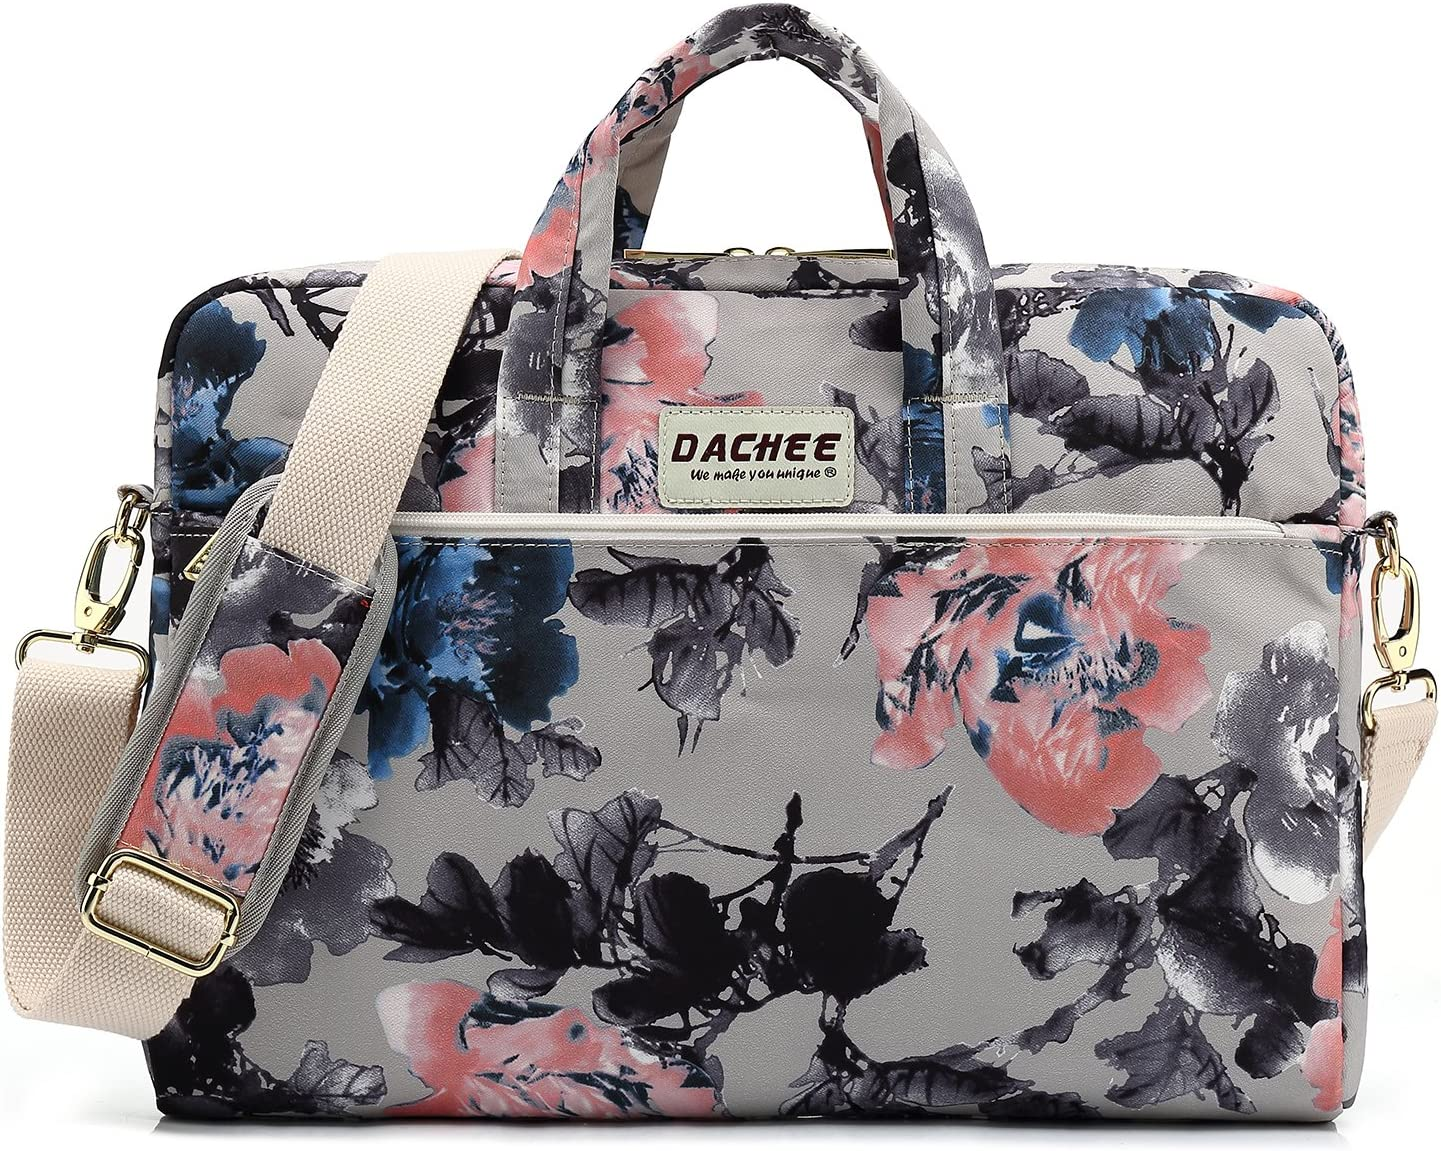 DACHEE Grey Rose Pattern Waterproof Laptop Shoulder Messenger Bag Case Sleeve for 12 inch 13 inch Laptop and 11/12/13.3 inch